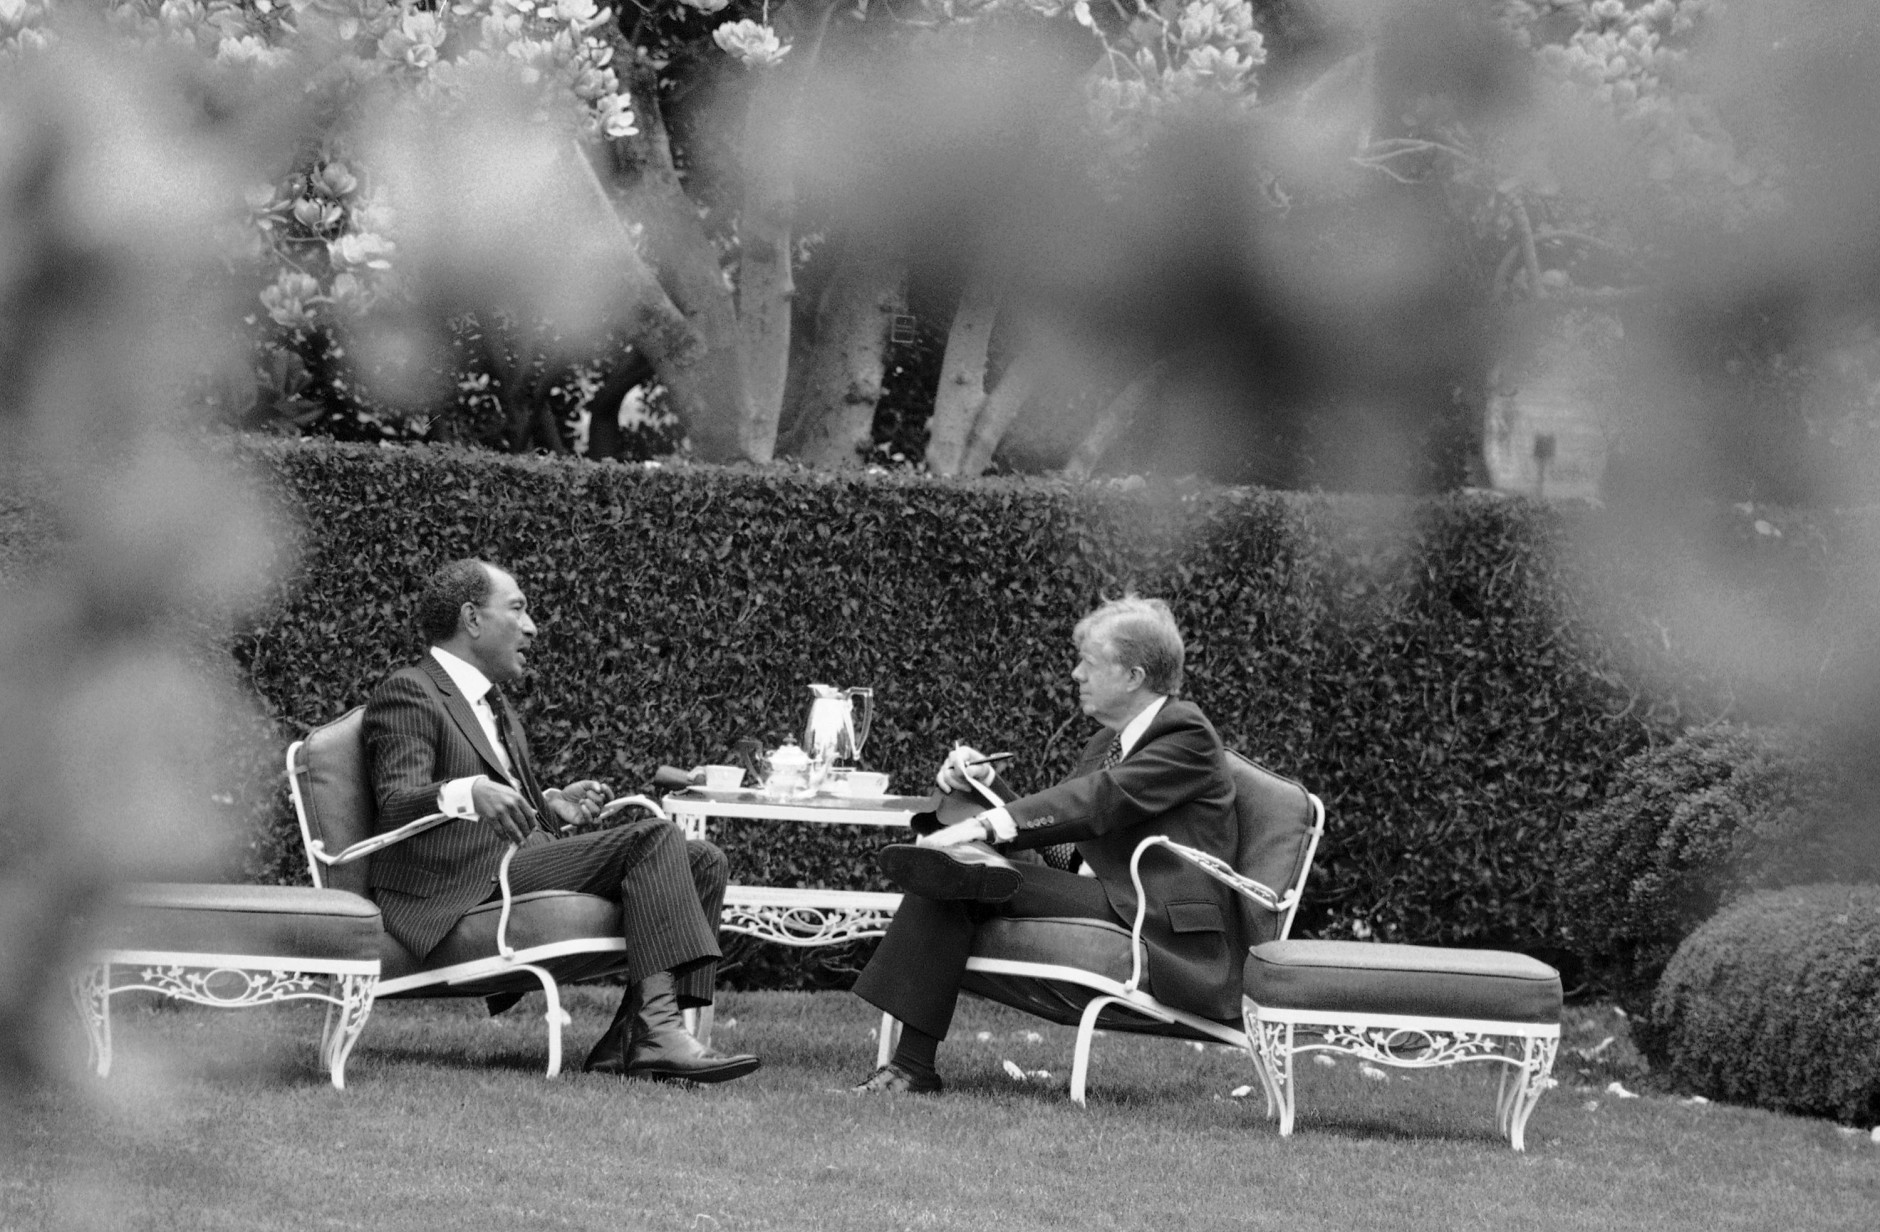 Egyptian President Anwar Sadat, left, and President Jimmy Carter have a lunch in the Rose Garden of the White House in Washington on April 8, 1980. Sadat is meeting with Carter trying to break through the stalled peace talks with Israel. (AP Photo)